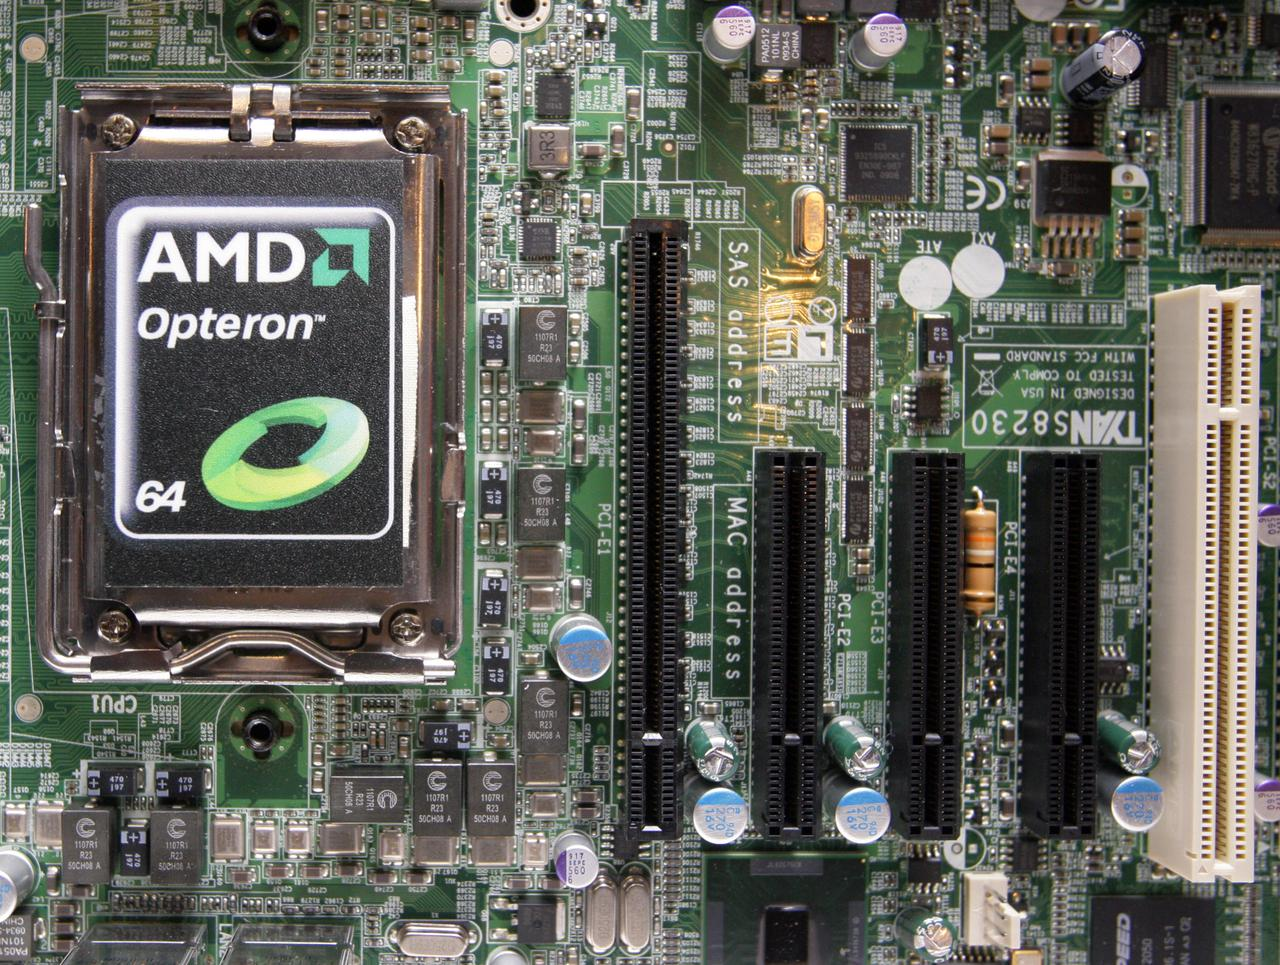 AMD needs perfection to justify share price rally: analysts